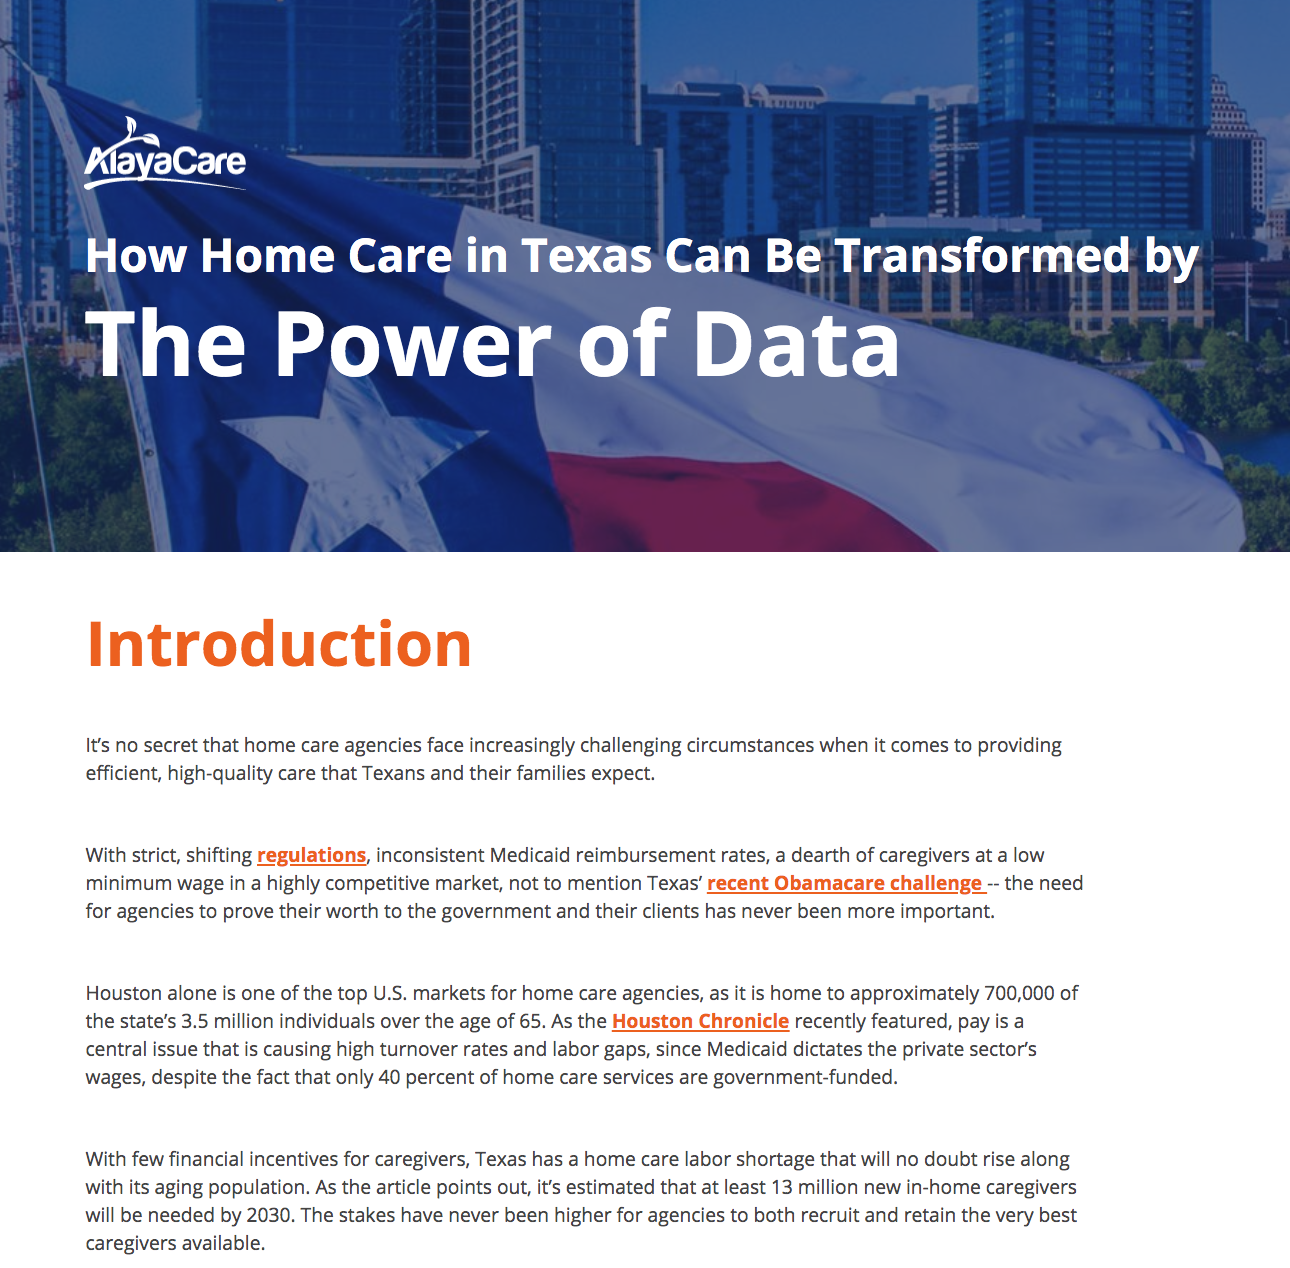 How Home Care in Texas Can Be Transformed